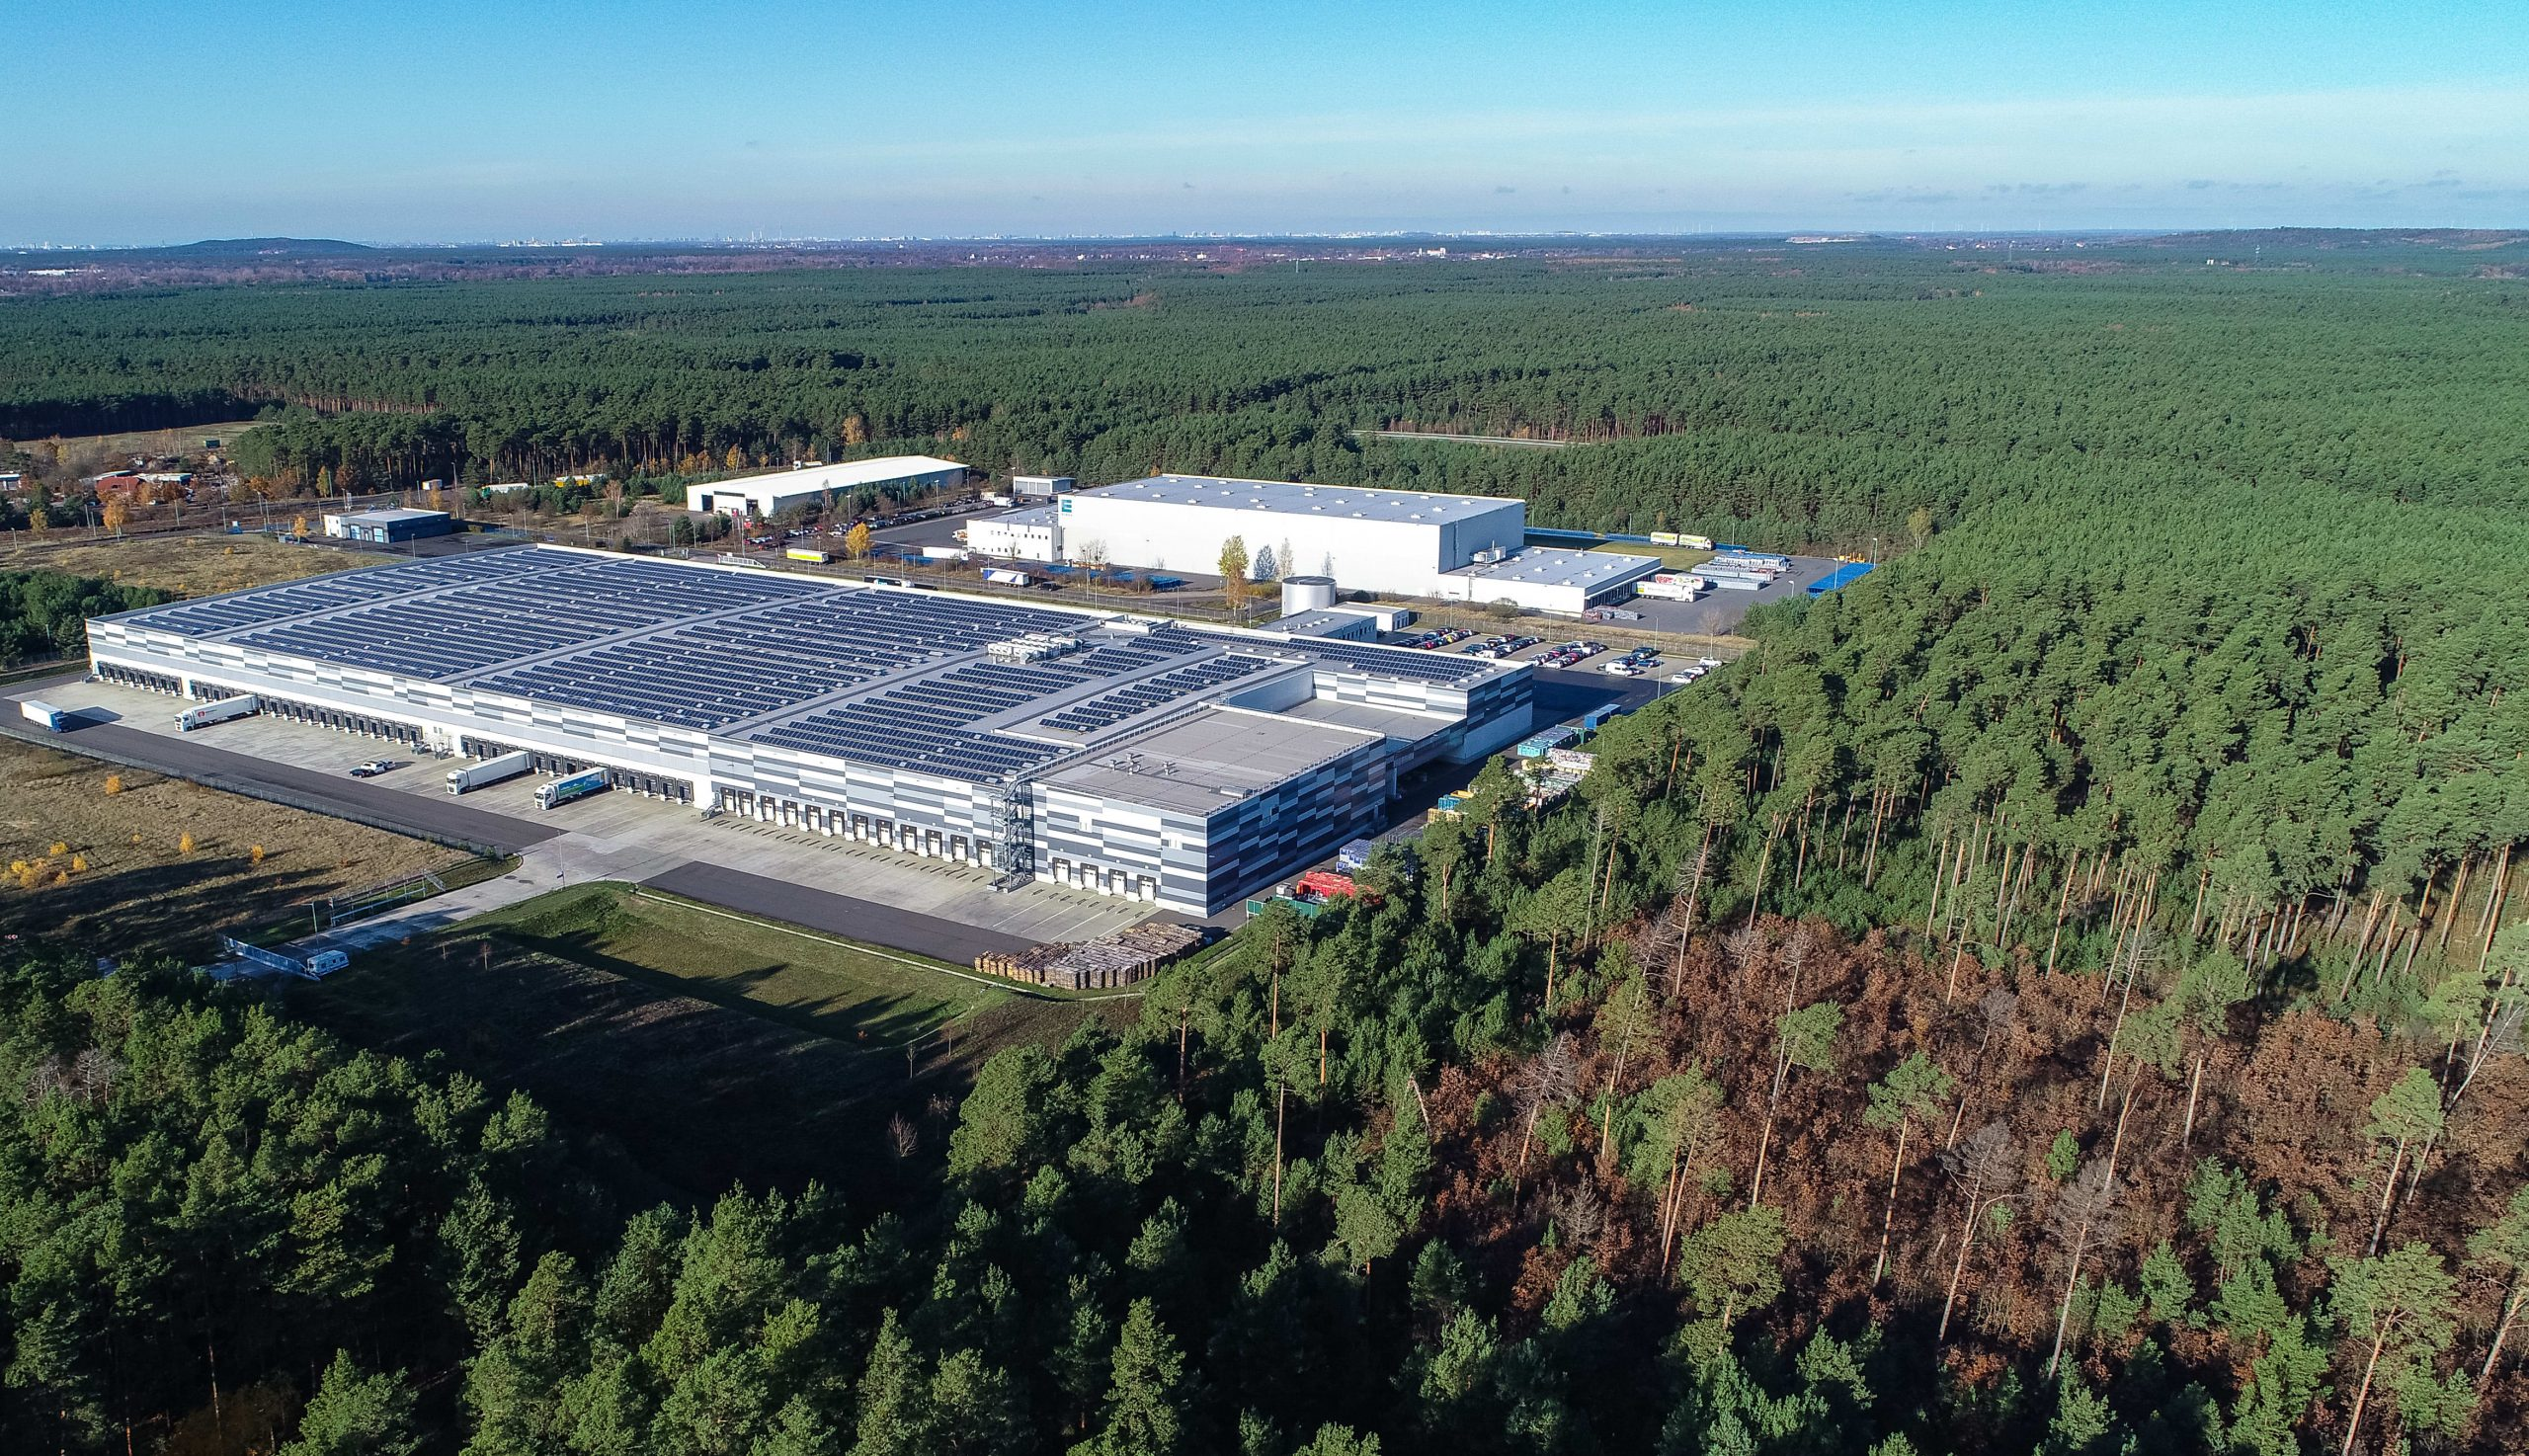 Tesla Berlin factory risks delay over environmental objections